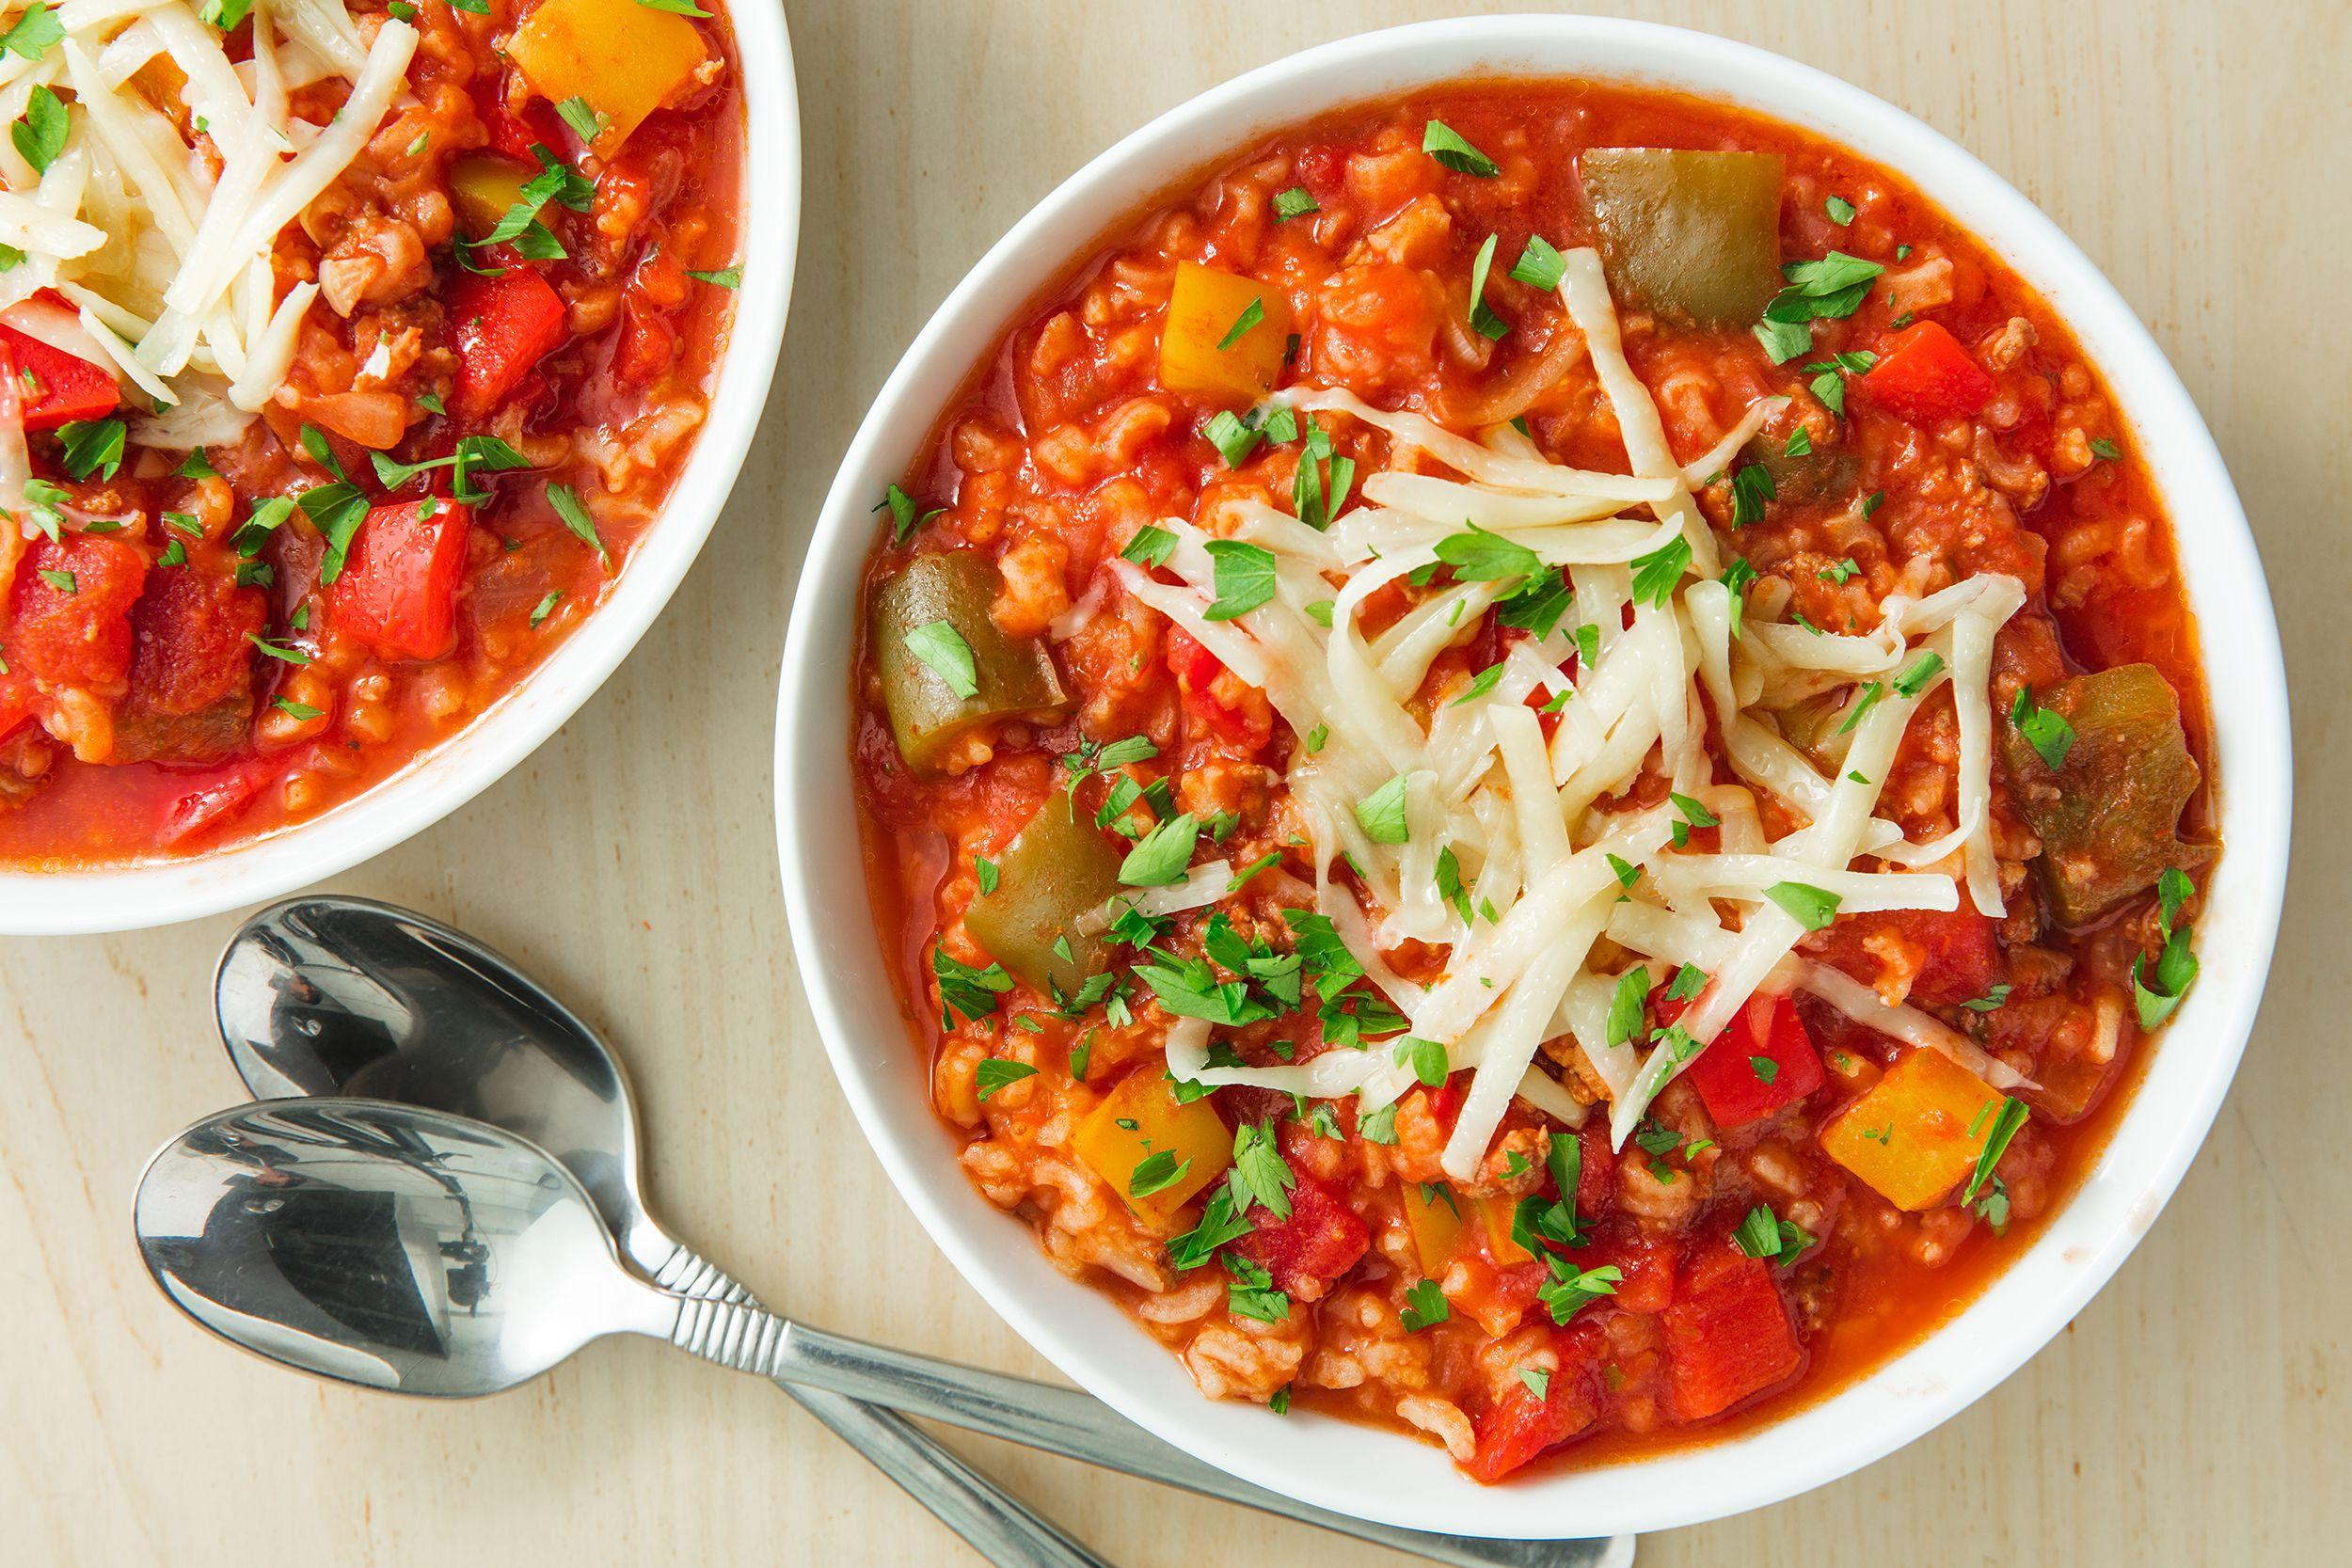 "<p>During fall, all we want to do is drink PSLs, wear sweaters, and eat soup. It's just right. These easy autumn soup recipes will warm you up with minimal time in the kitchen. For more fall-approved meals, try out our <a href=""https://www.delish.com/cooking/g1770/best-pumpkin-recipes/"" rel=""nofollow noopener"" target=""_blank"" data-ylk=""slk:favorite pumpkin recipes"" class=""link rapid-noclick-resp"">favorite pumpkin recipes</a> and <a href=""https://www.delish.com/holiday-recipes/halloween/g151/halloween-desserts/"" rel=""nofollow noopener"" target=""_blank"" data-ylk=""slk:Halloween desserts"" class=""link rapid-noclick-resp"">Halloween desserts</a>.</p>"